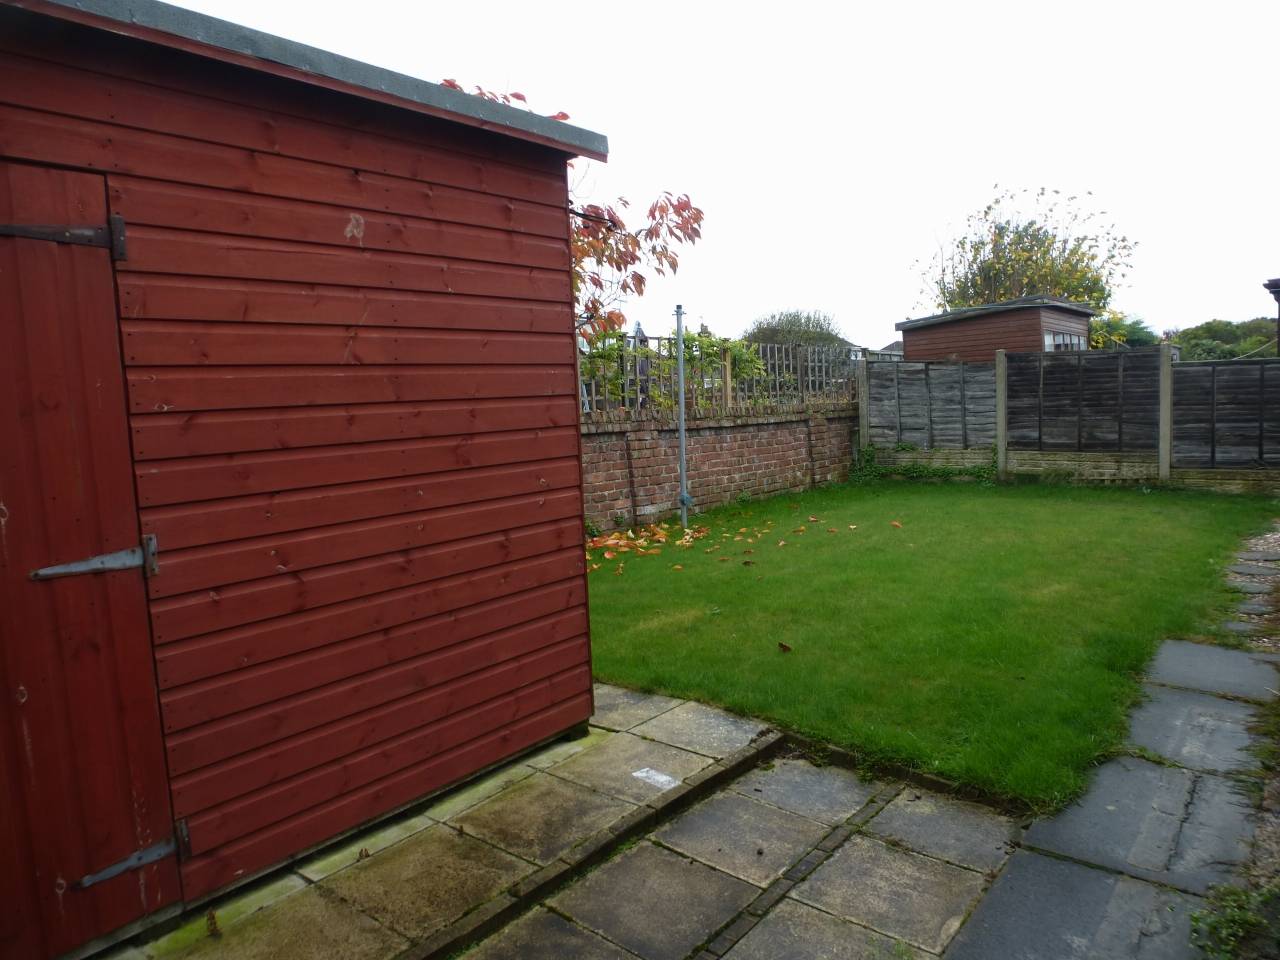 Image 1 of 1 of OUTSIDE, on Accommodation Comprising for